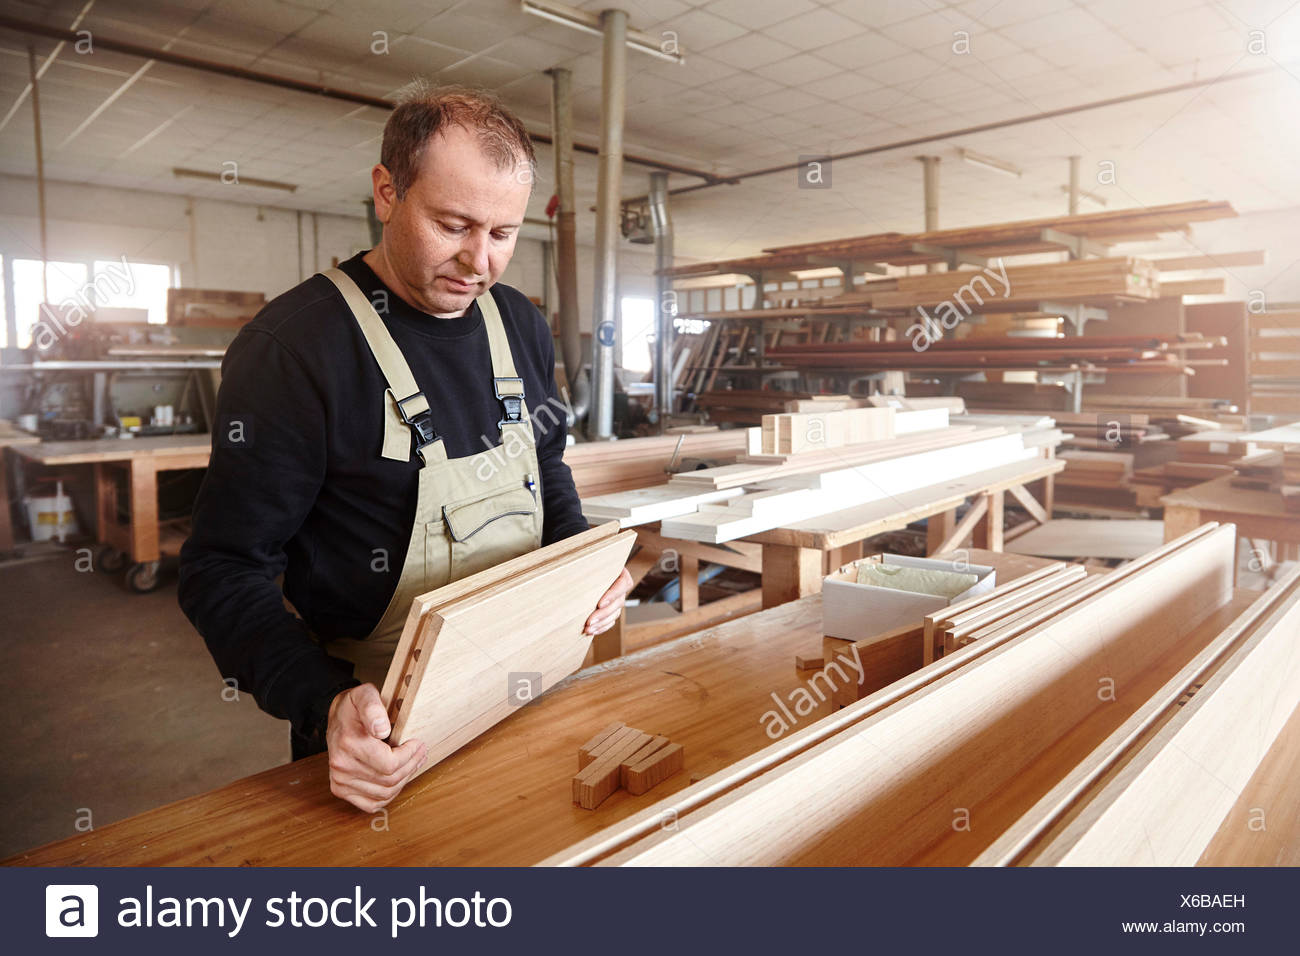 Male carpenter inspecting wood plank at workbench - Stock Image